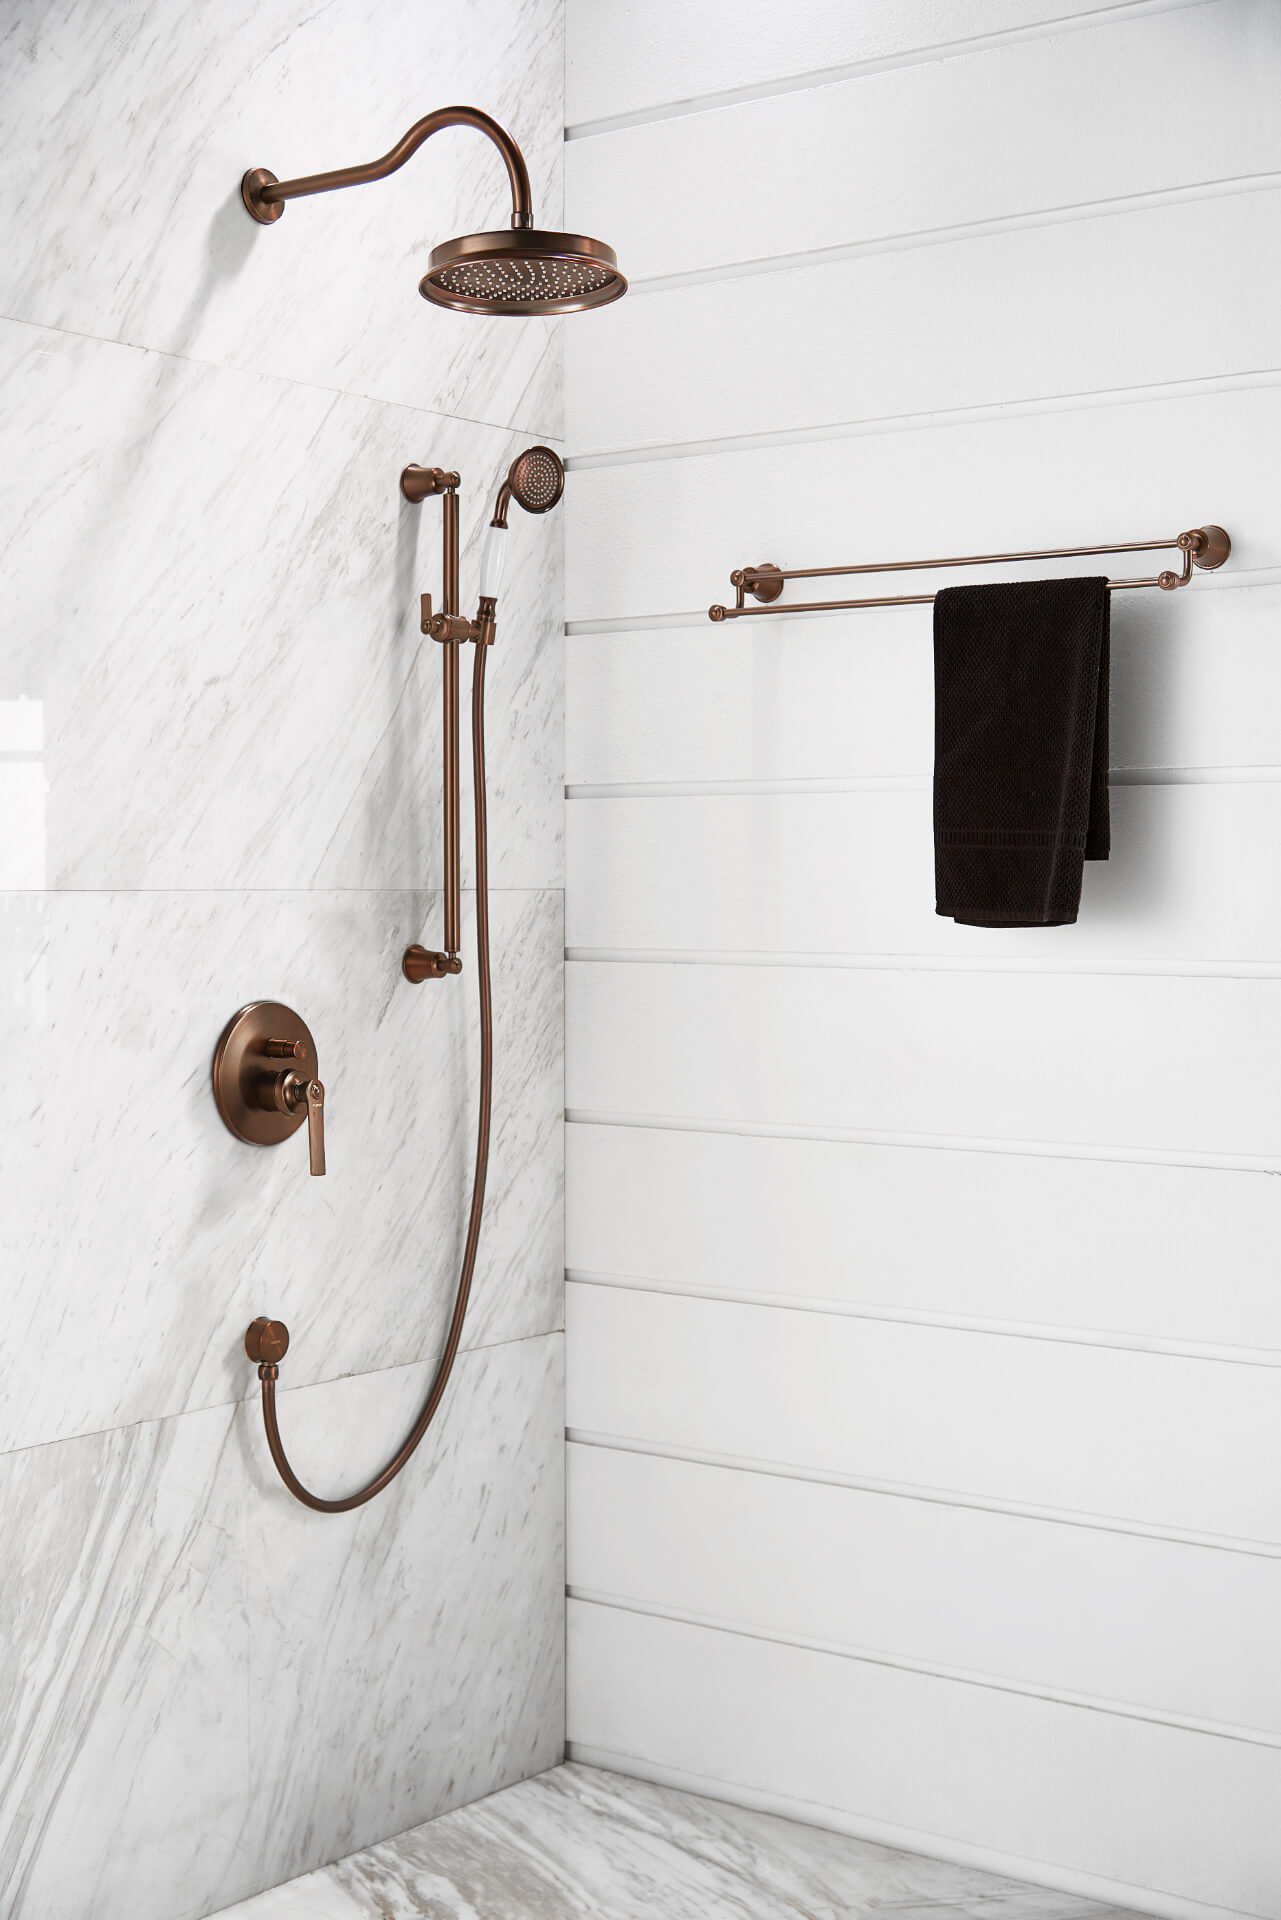 Flova Bronze Bathroom Appliance